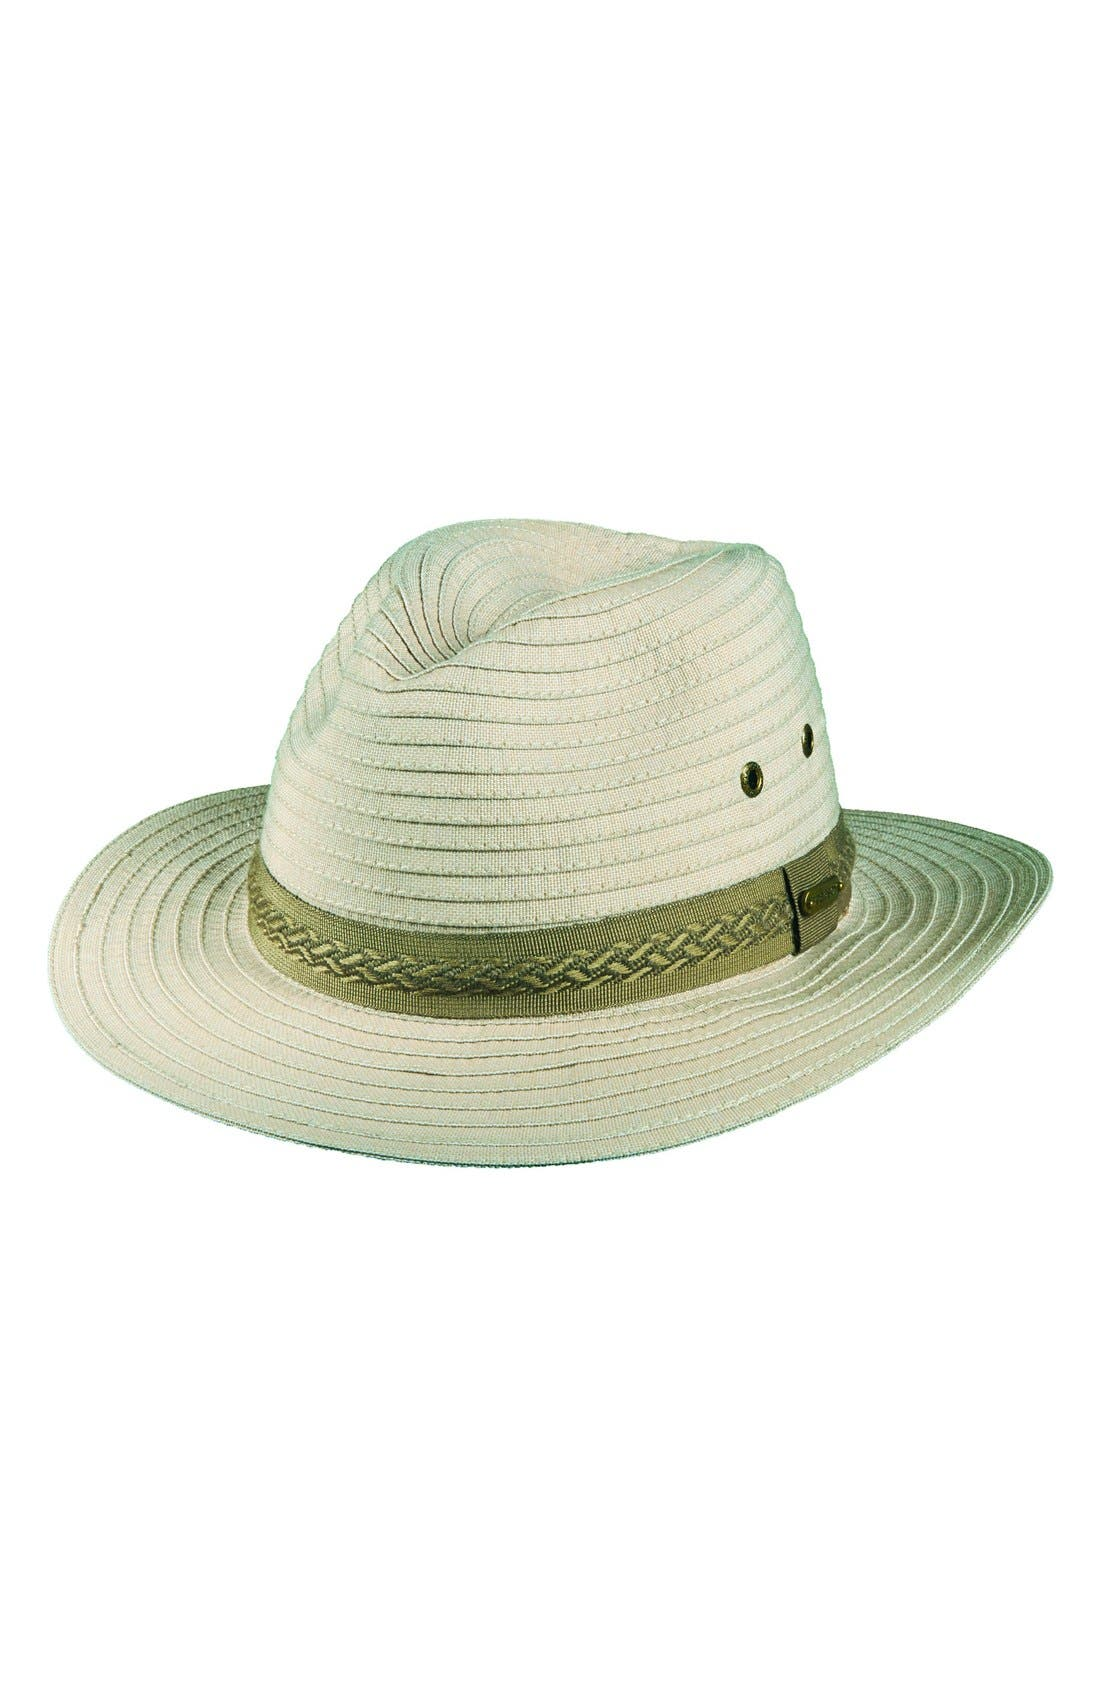 Alternate Image 1 Selected - Stetson Packable Safari Hat